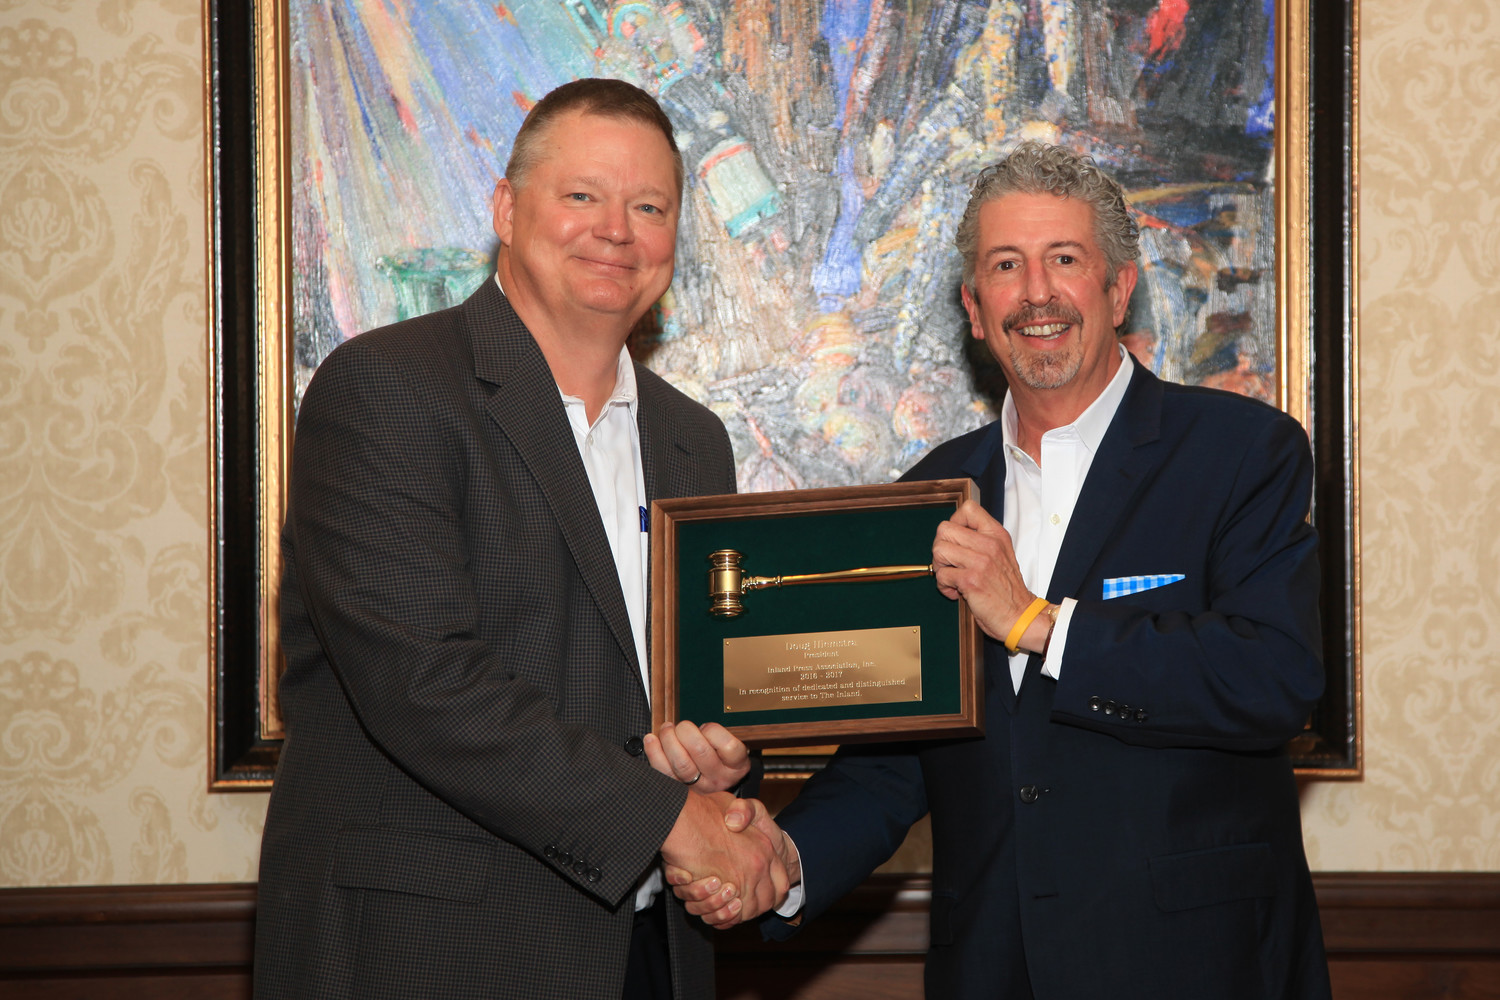 In a ceremonial passing of the gavel from the outgoing president, Doug Hiemstra, left, 